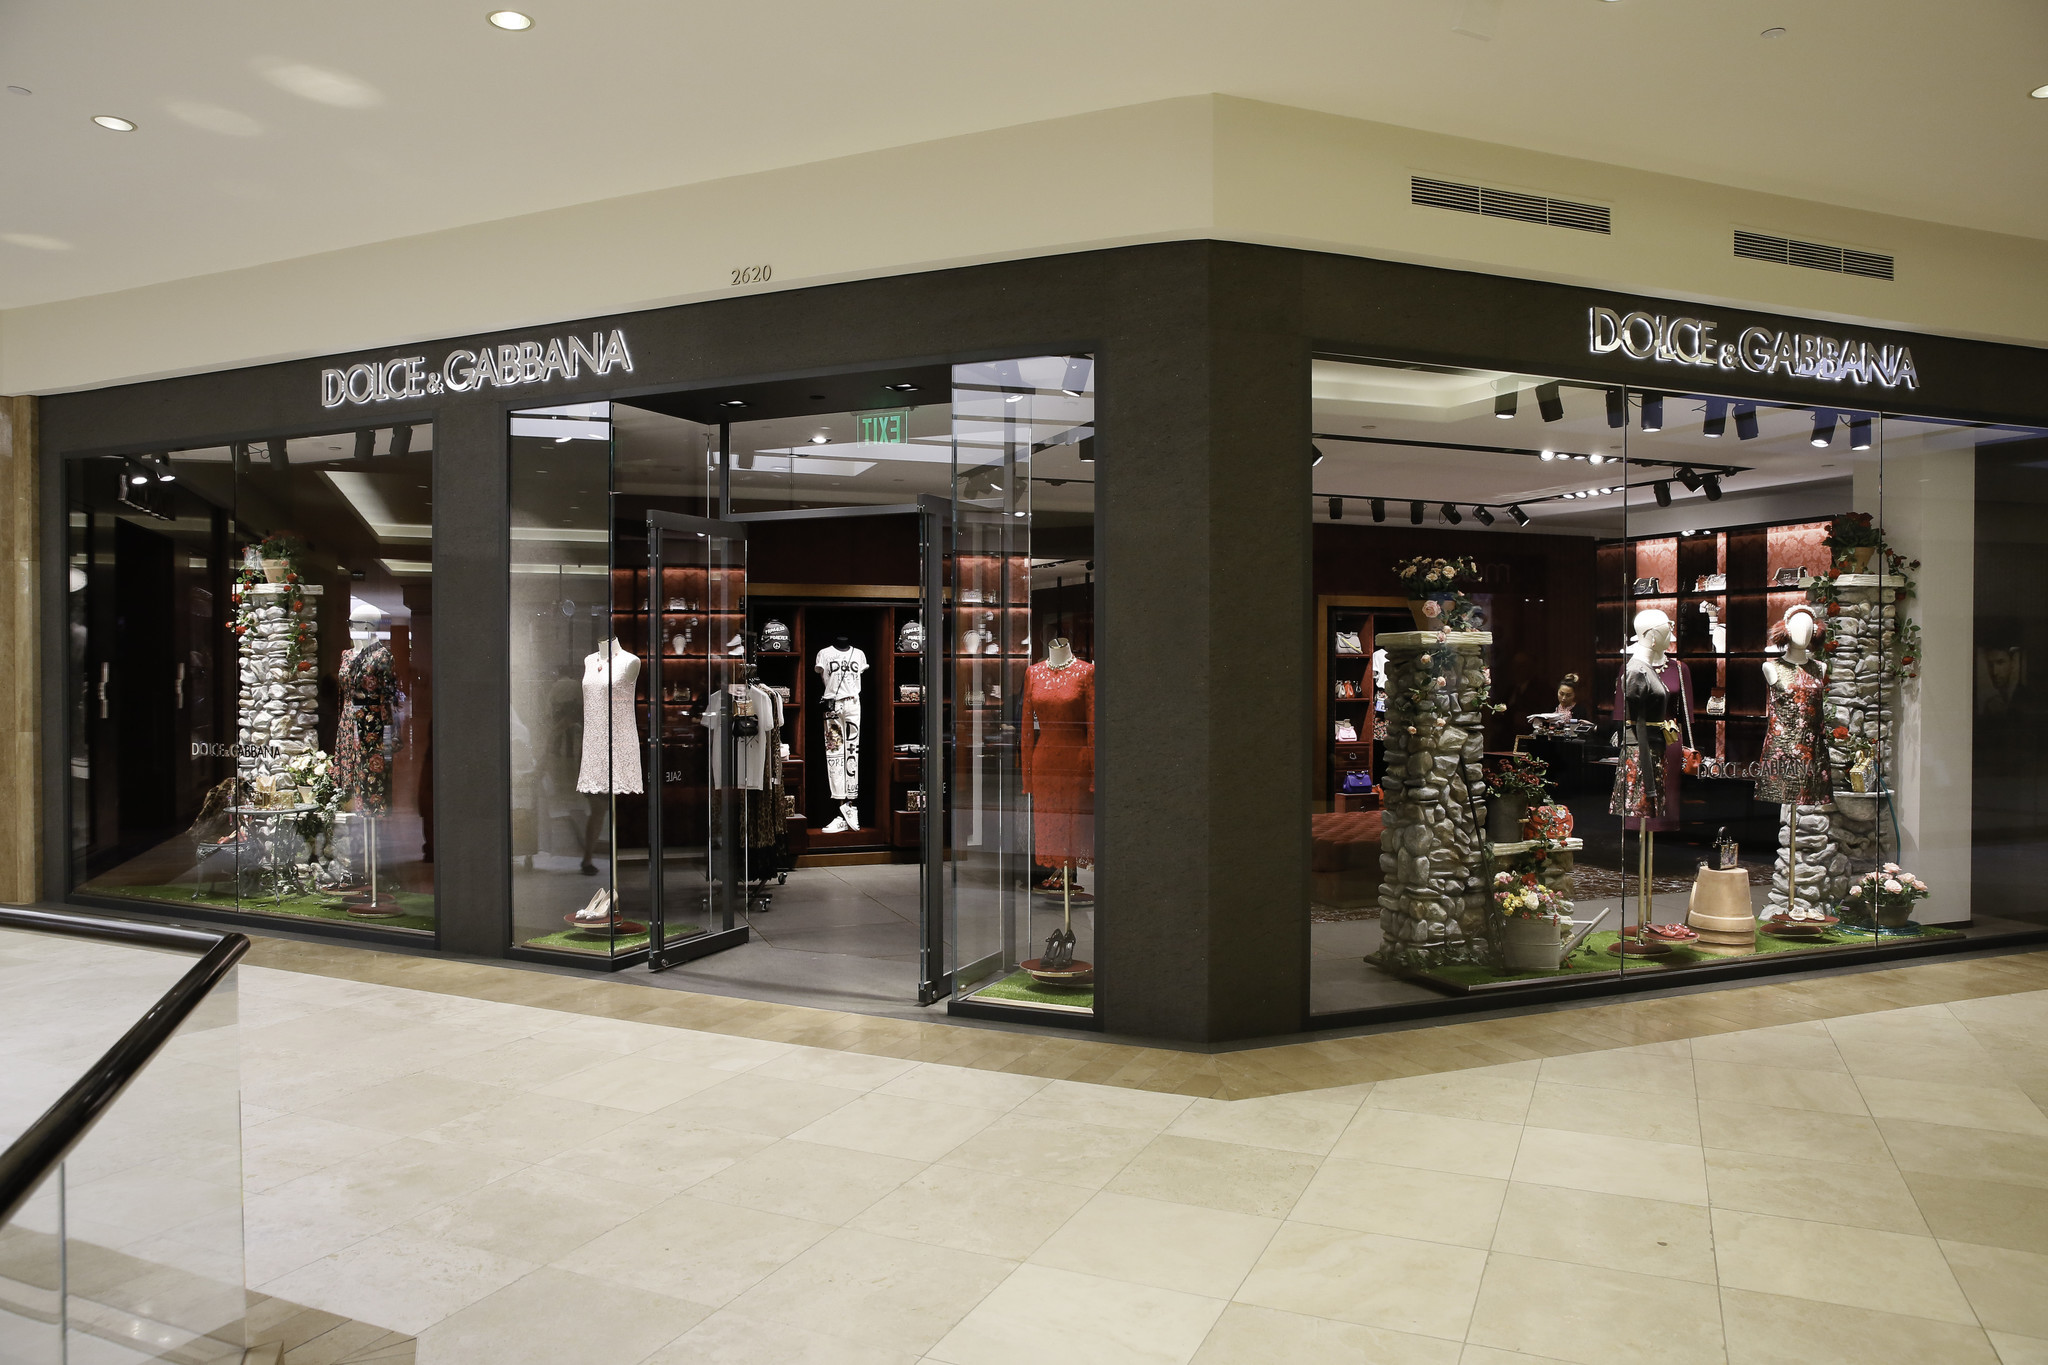 The July 25 cocktail party was held at Dolce & Gabbana's South Coast Plaza boutique.